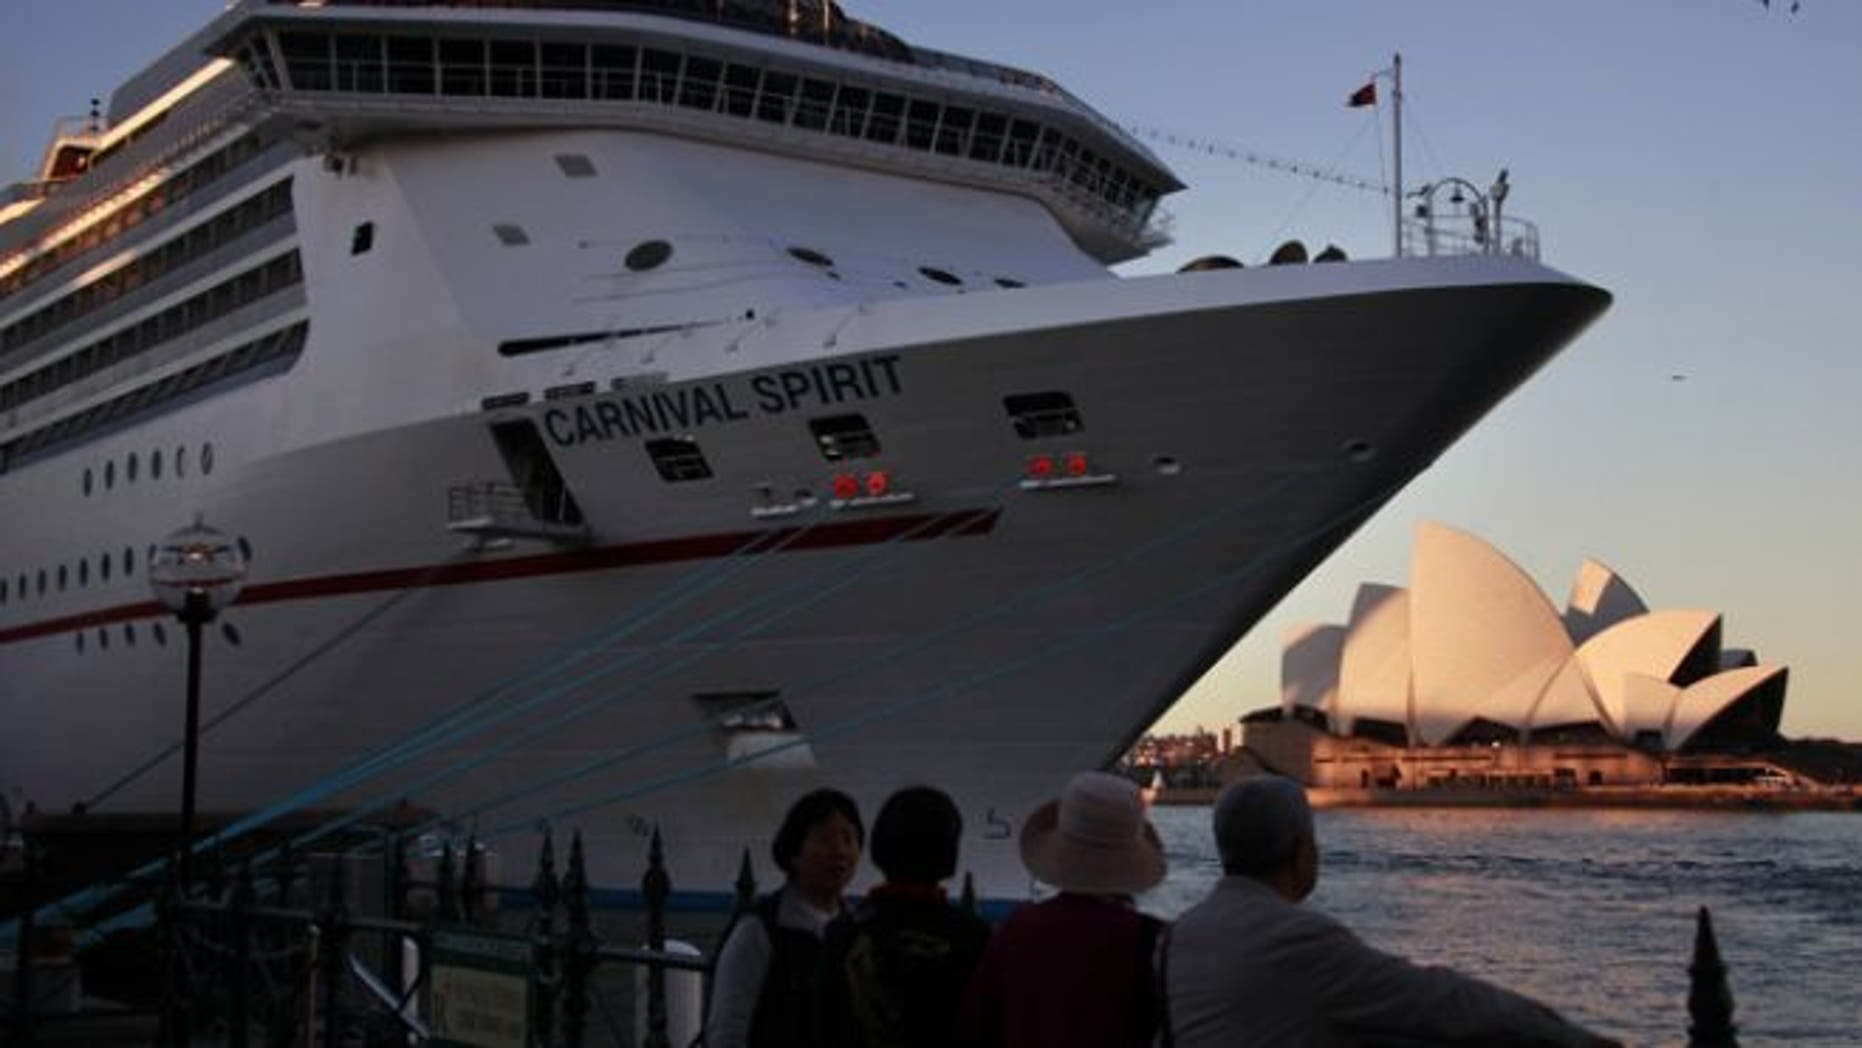 """May 9, 2013: Onlookers stand below a Carnival Cruise Lines ship called the """"Carnival Spirit"""" as it sits docked opposite the Sydney Opera House."""